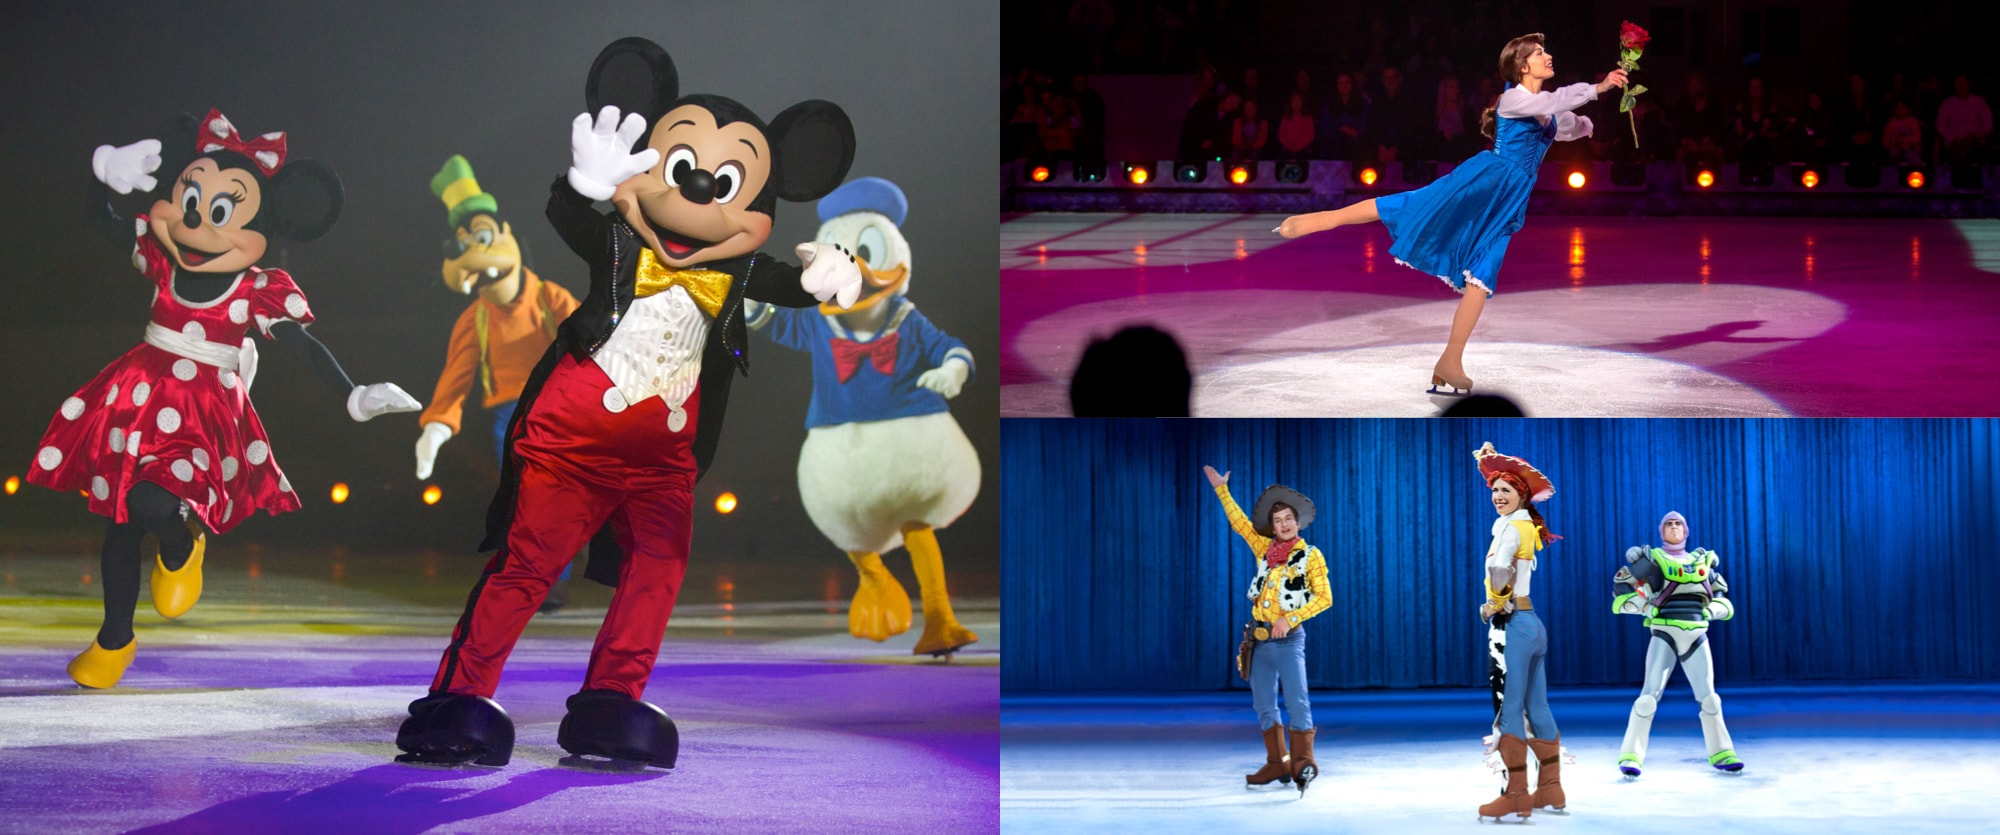 3 images of Mickey Mouse and friends, Belle from Beauty and the Beast and Woody Jessie and Buzz from Toy Story.